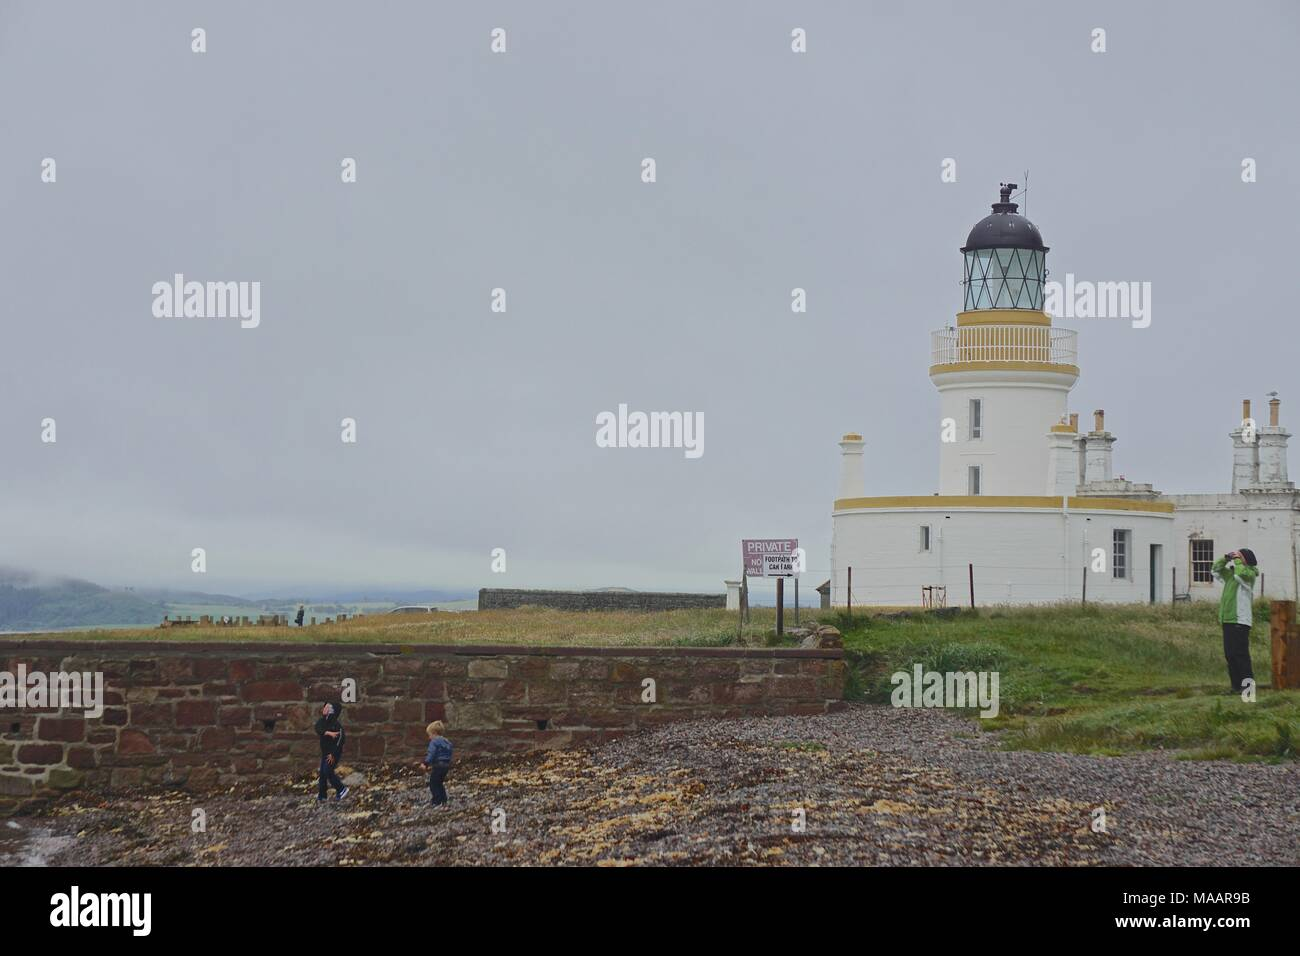 A family at the Chanonry Point Lighthouse (1846) on the Black Isle, Scotland, a popular location for dolphin watching in the Moray Firth. - Stock Image